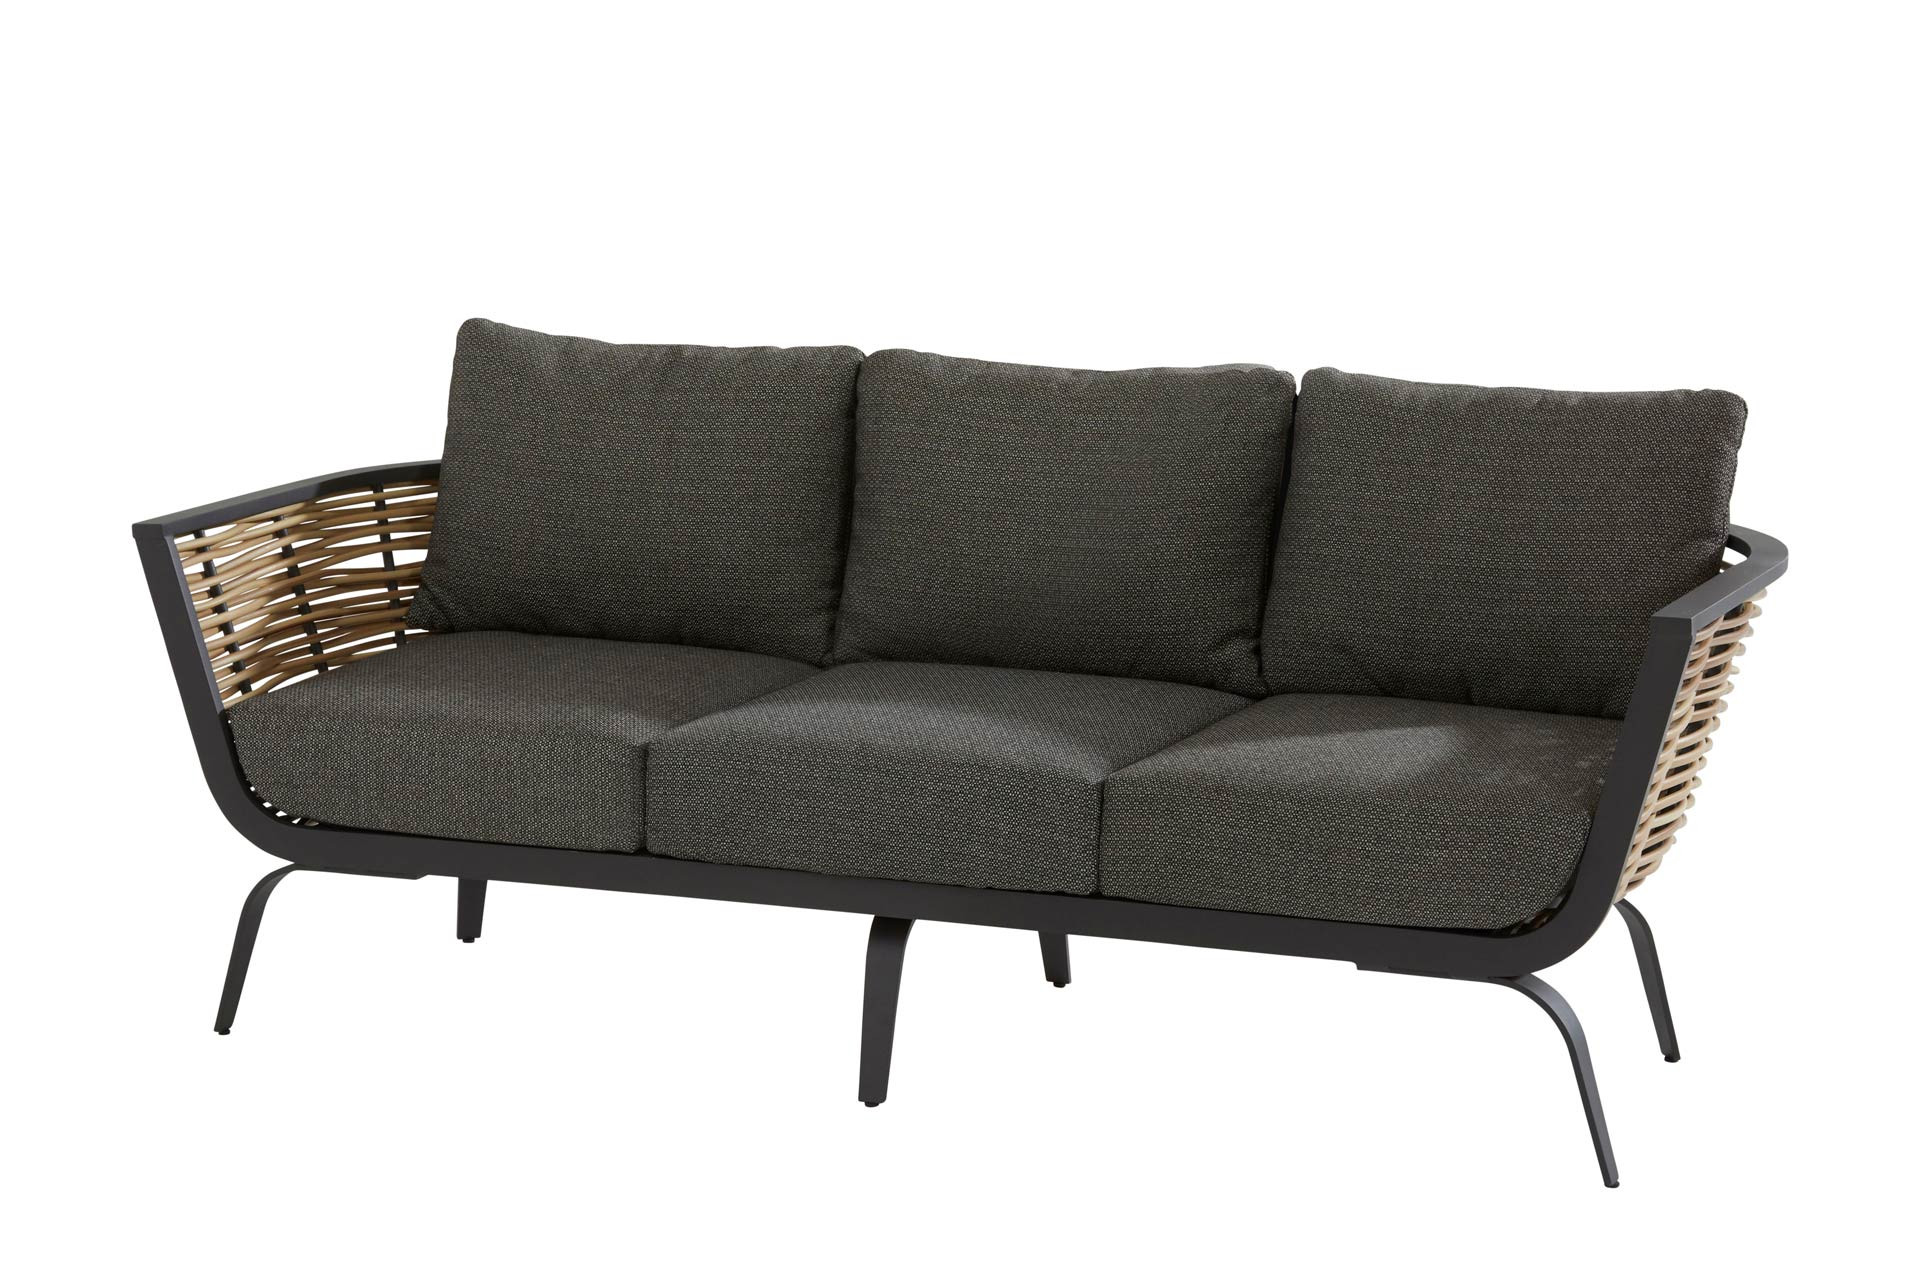 Antibes 3 seater bench 2 arms with 6 cushions